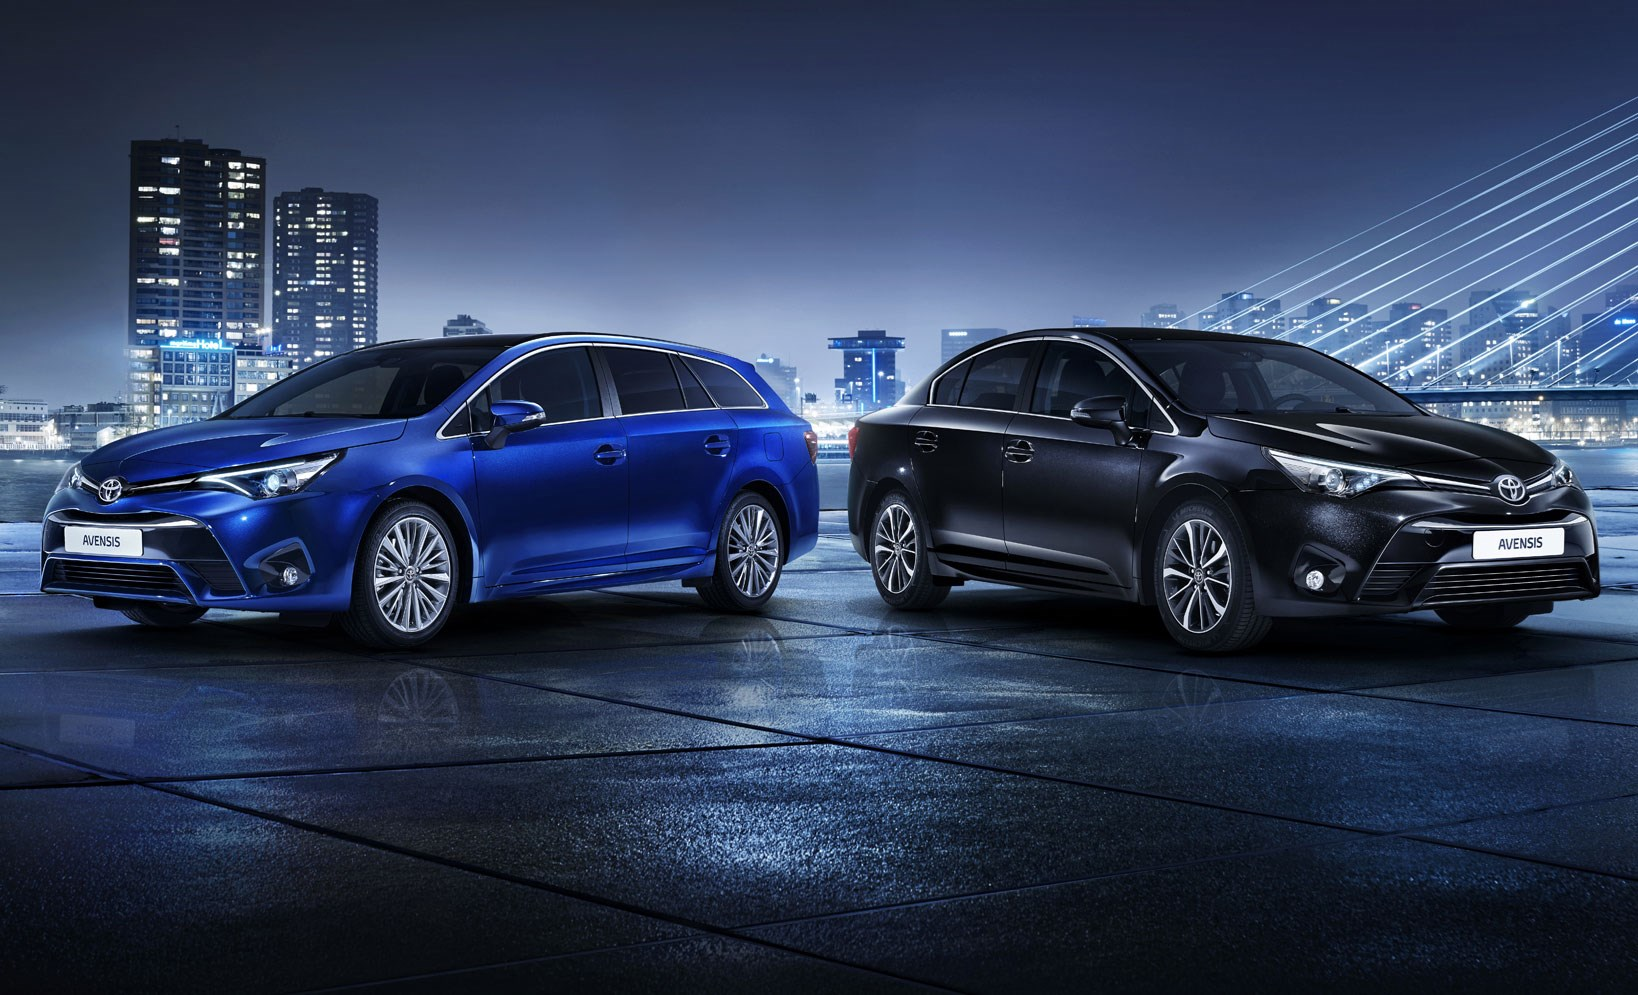 The 2015 facelifted Toyota Avensis range